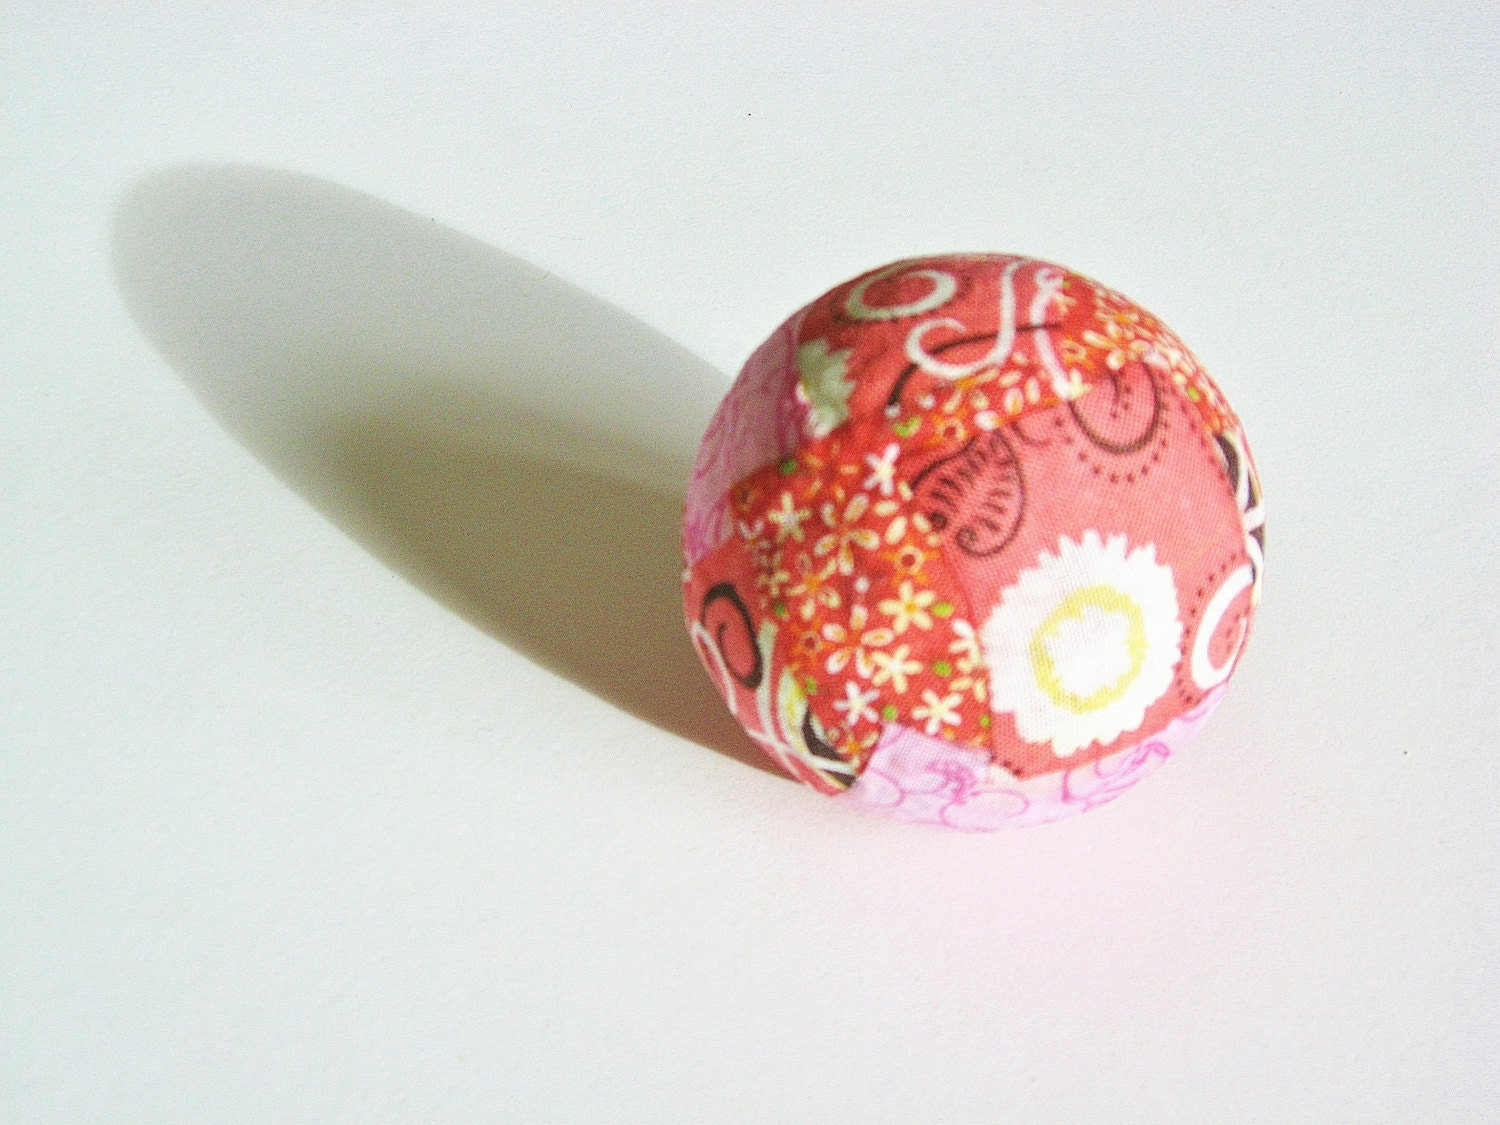 Pink Lady Bliss Therapy Ball - Effortless Massage & Pain Relief - Anywhere You Go  Epsteam RecycleParty teamupcyclers recycle upcycle